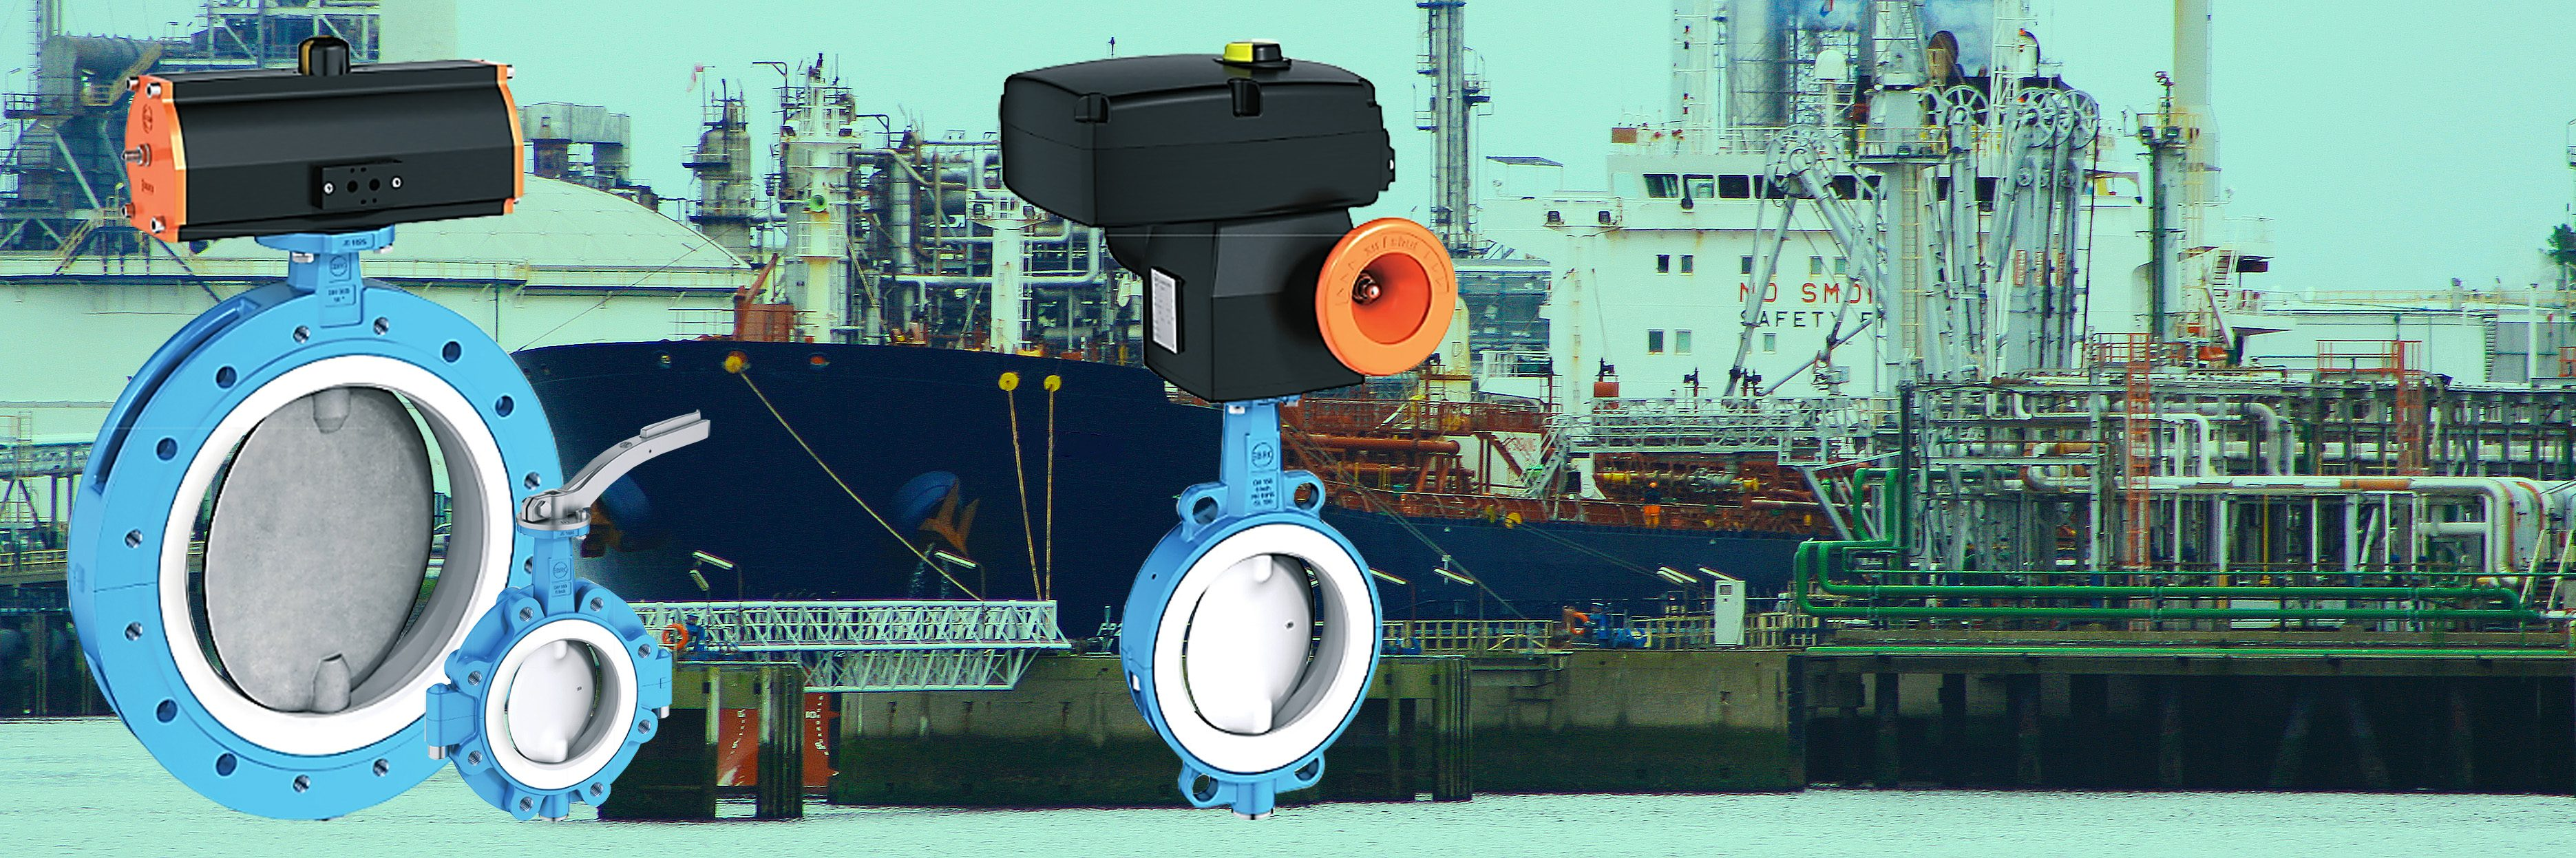 Products4Ships EBRO valves PTFE lined